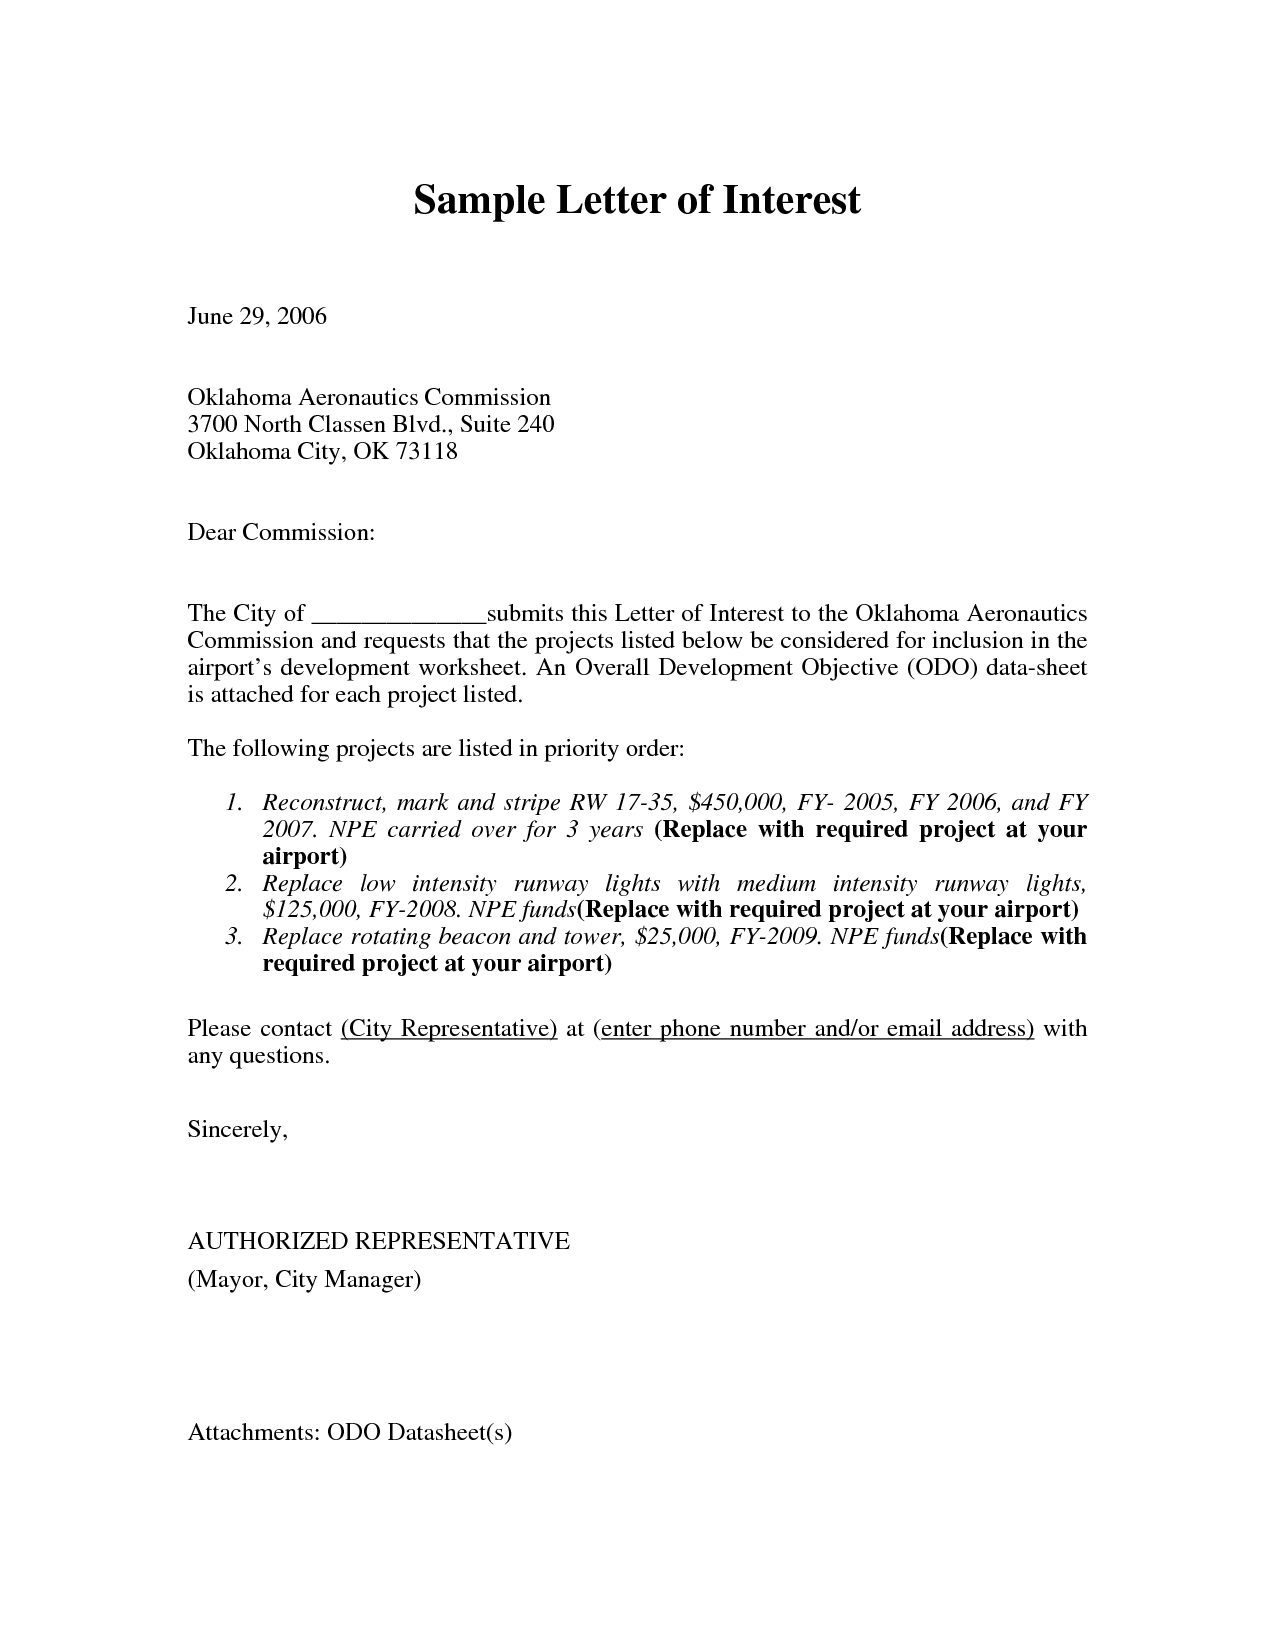 Letter Of Interest Format Letter Of Interest Internal Position Sample And Letter Of Interest Templates